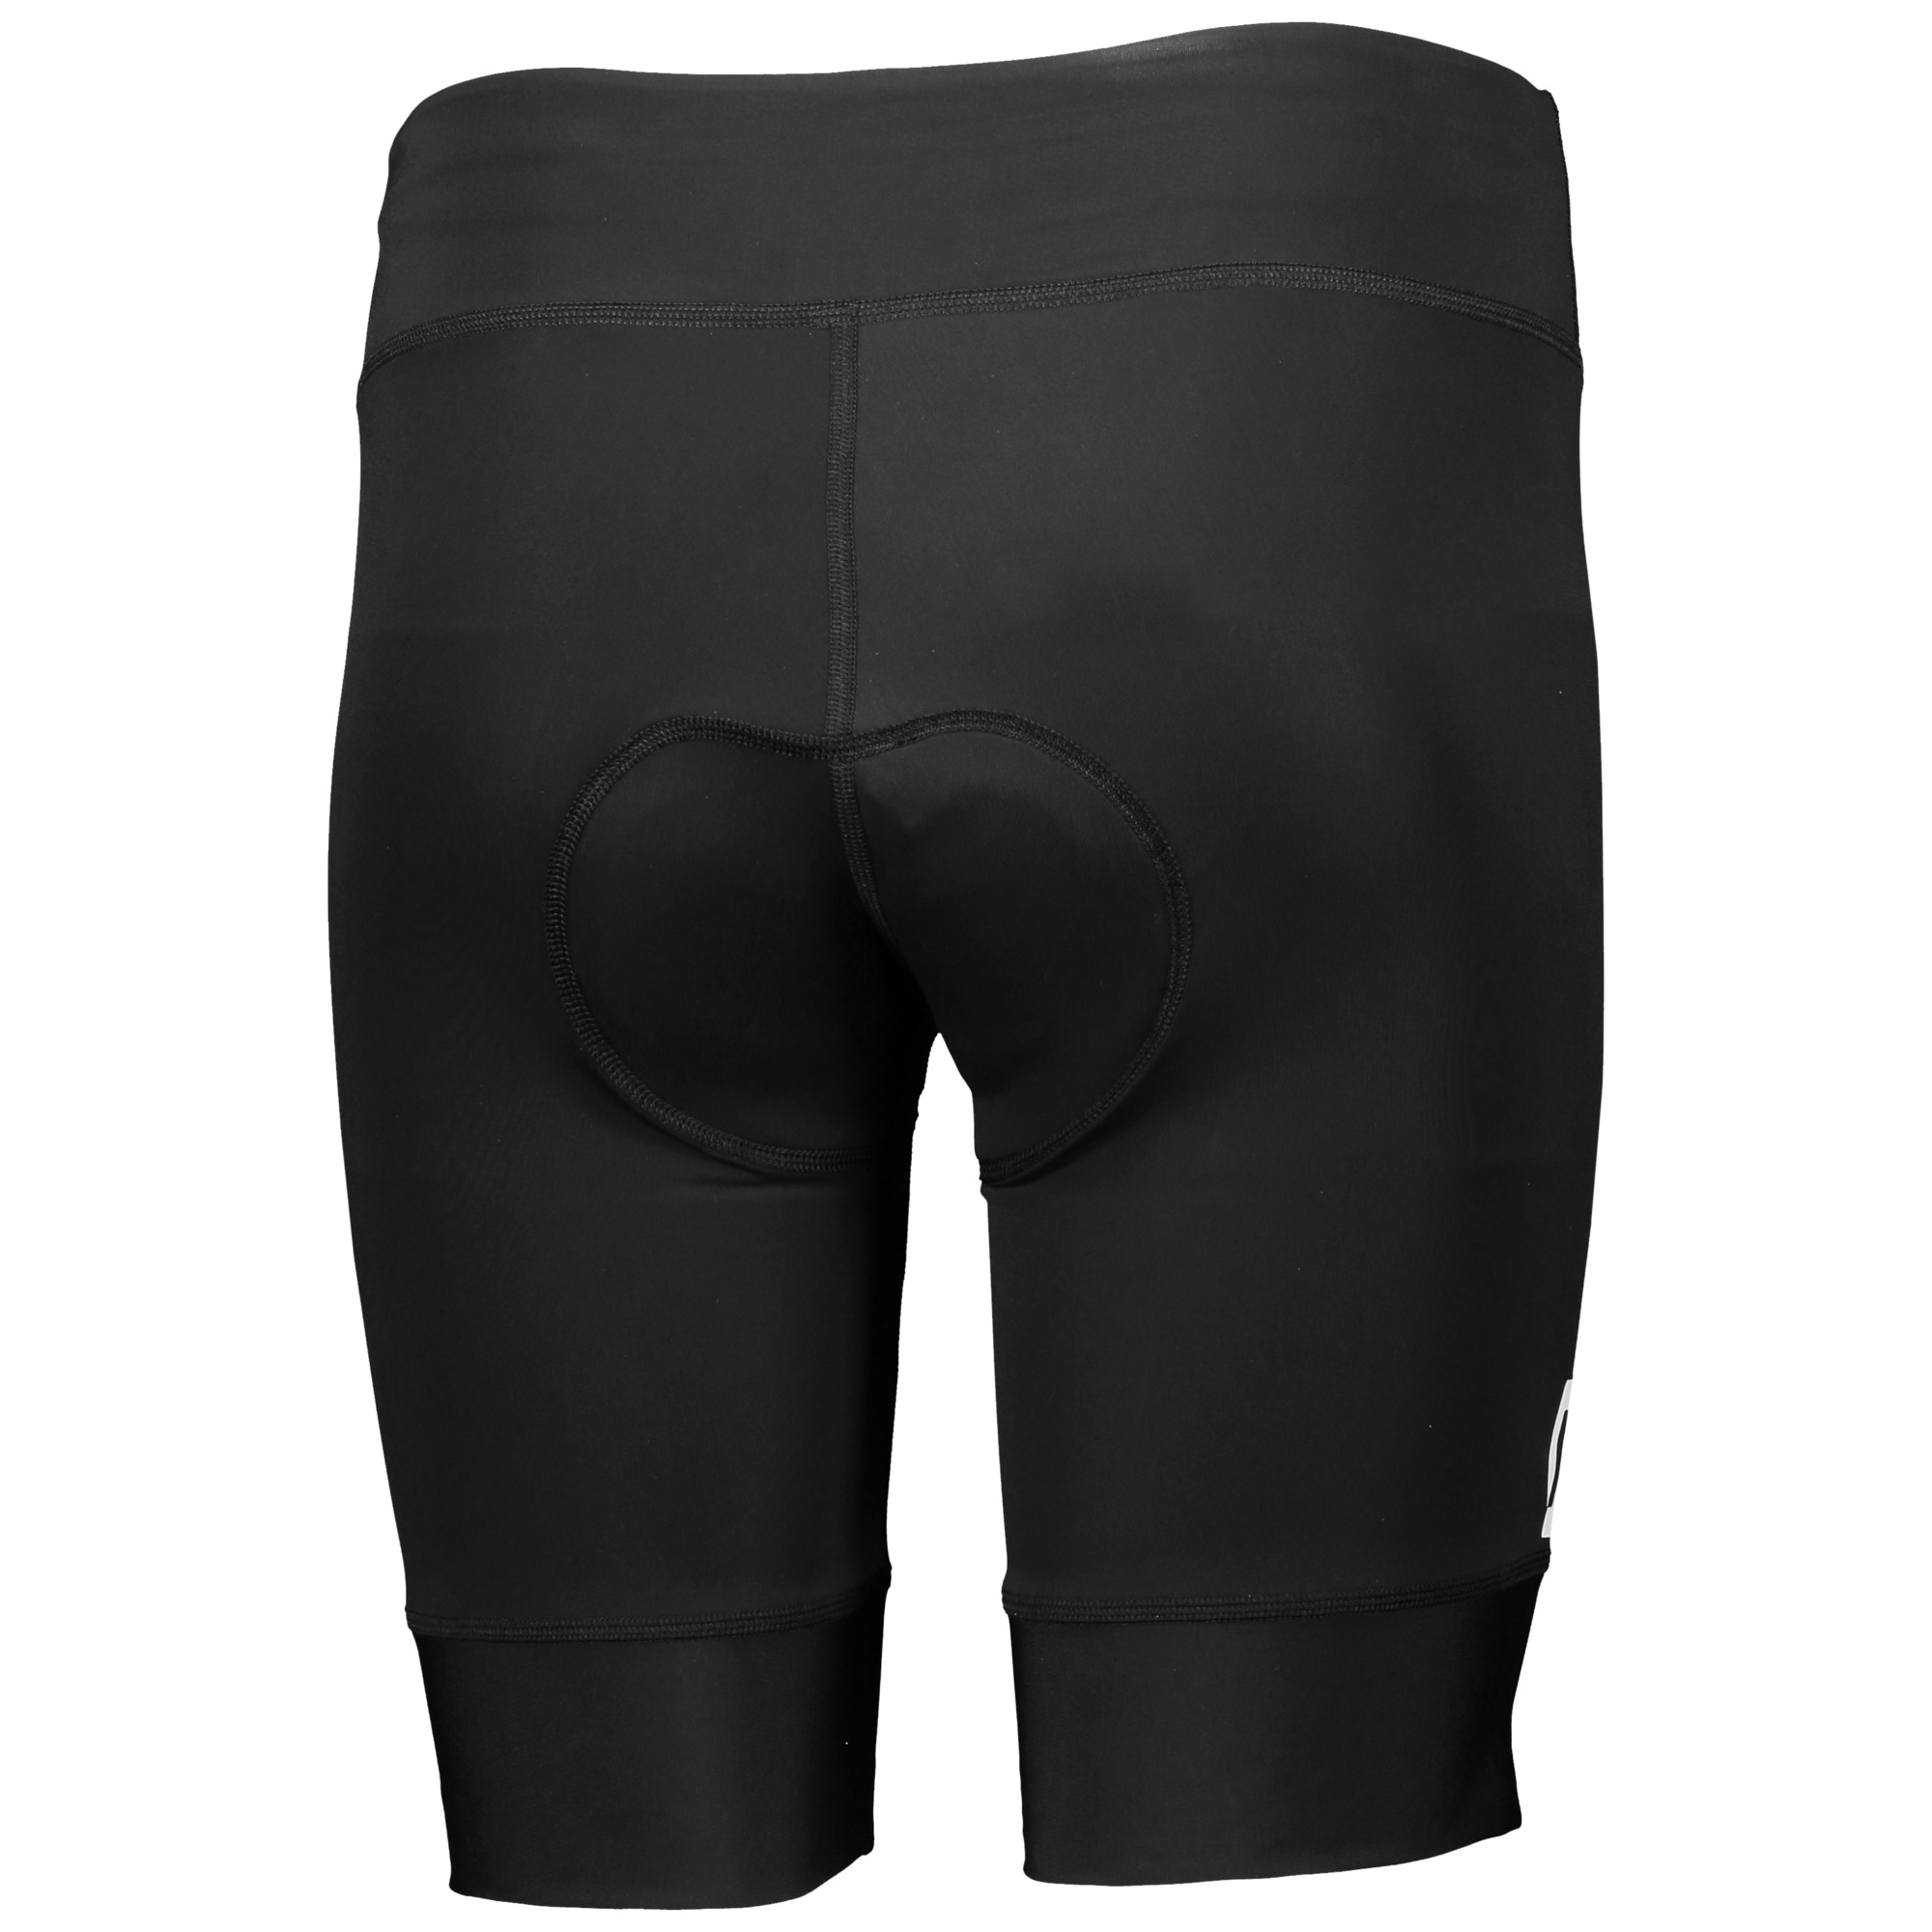 SCOTT Endurance 40 +  Women's Shorts